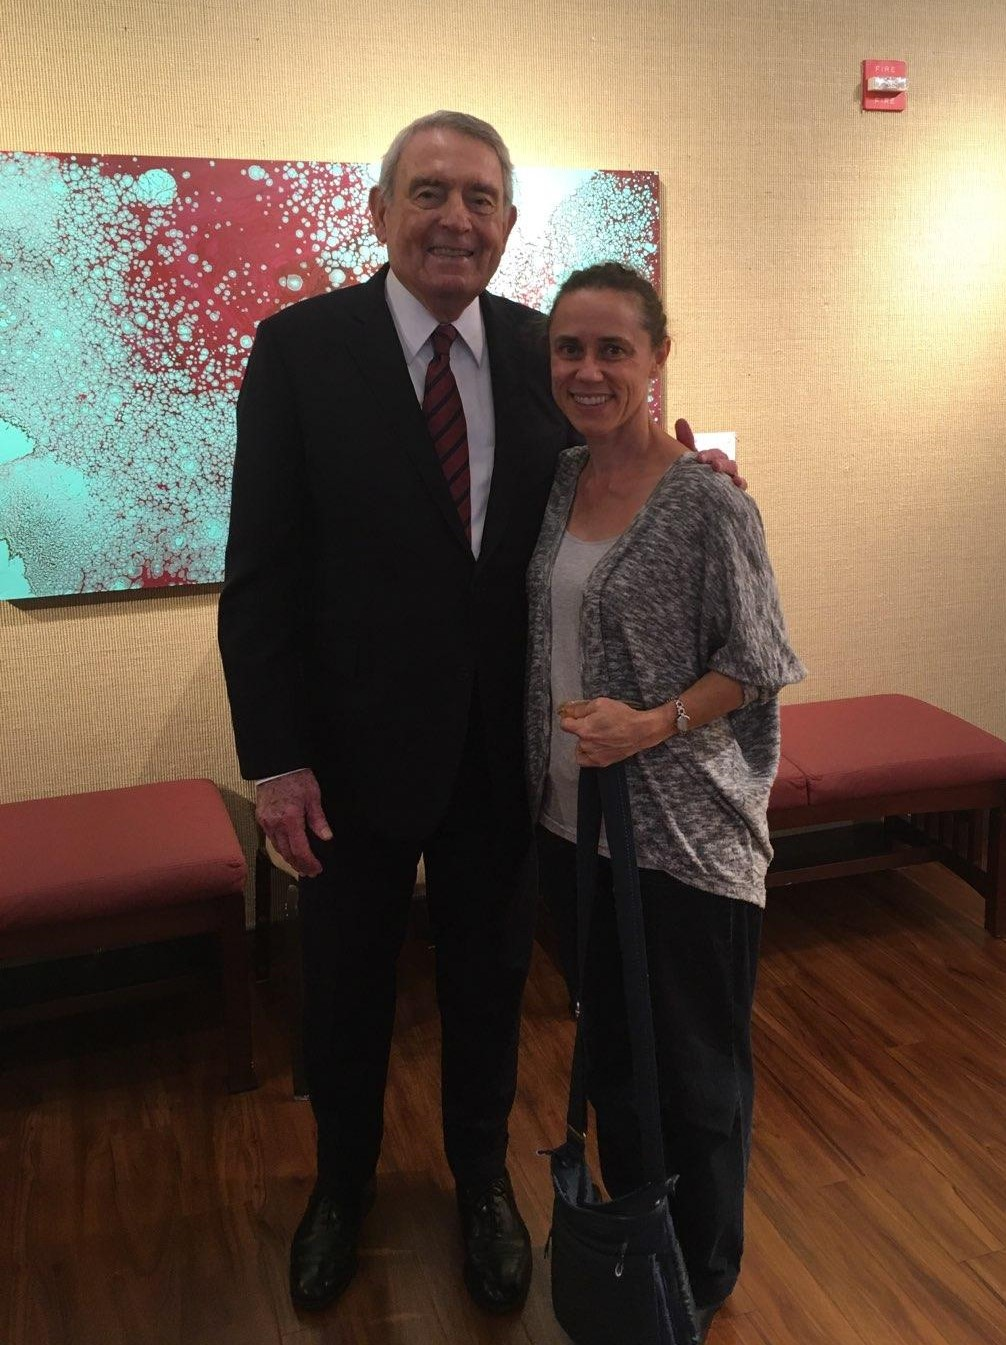 Dan Rather poses with Dr. Emily Cabaniss.